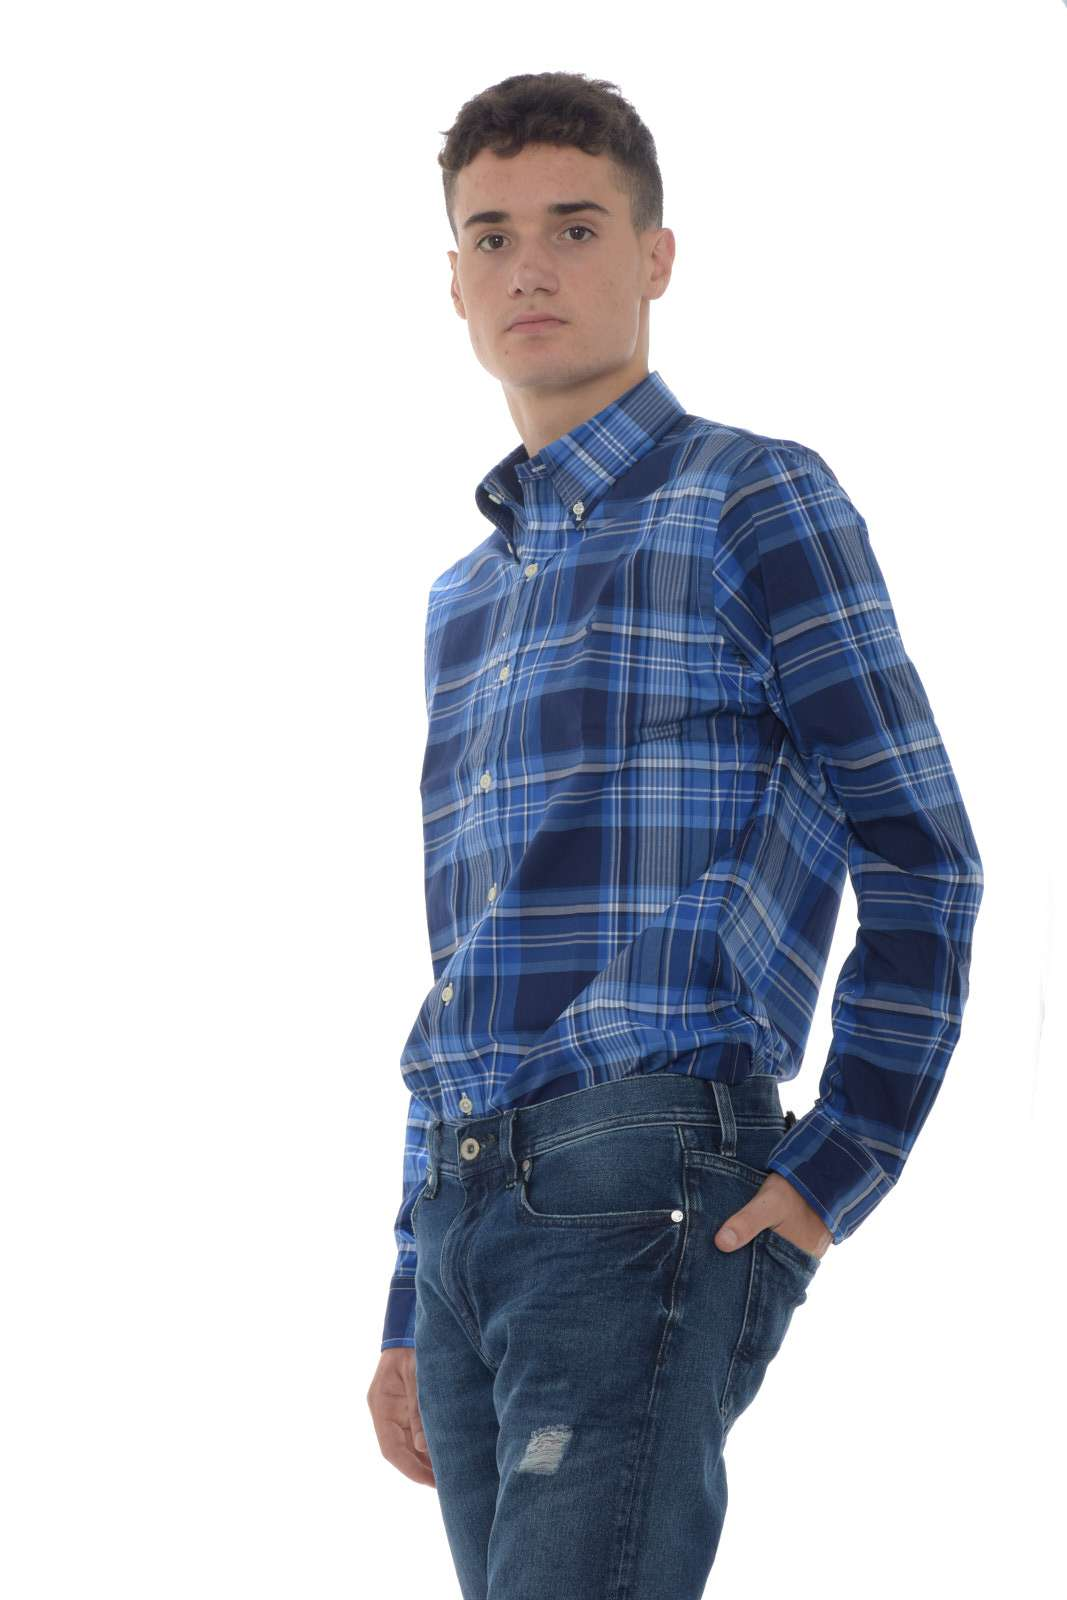 https://www.parmax.com/media/catalog/product/a/i/AI-outlet_parmax-camicia-uomo-Ralph-Lauren-710767330001-B.jpg